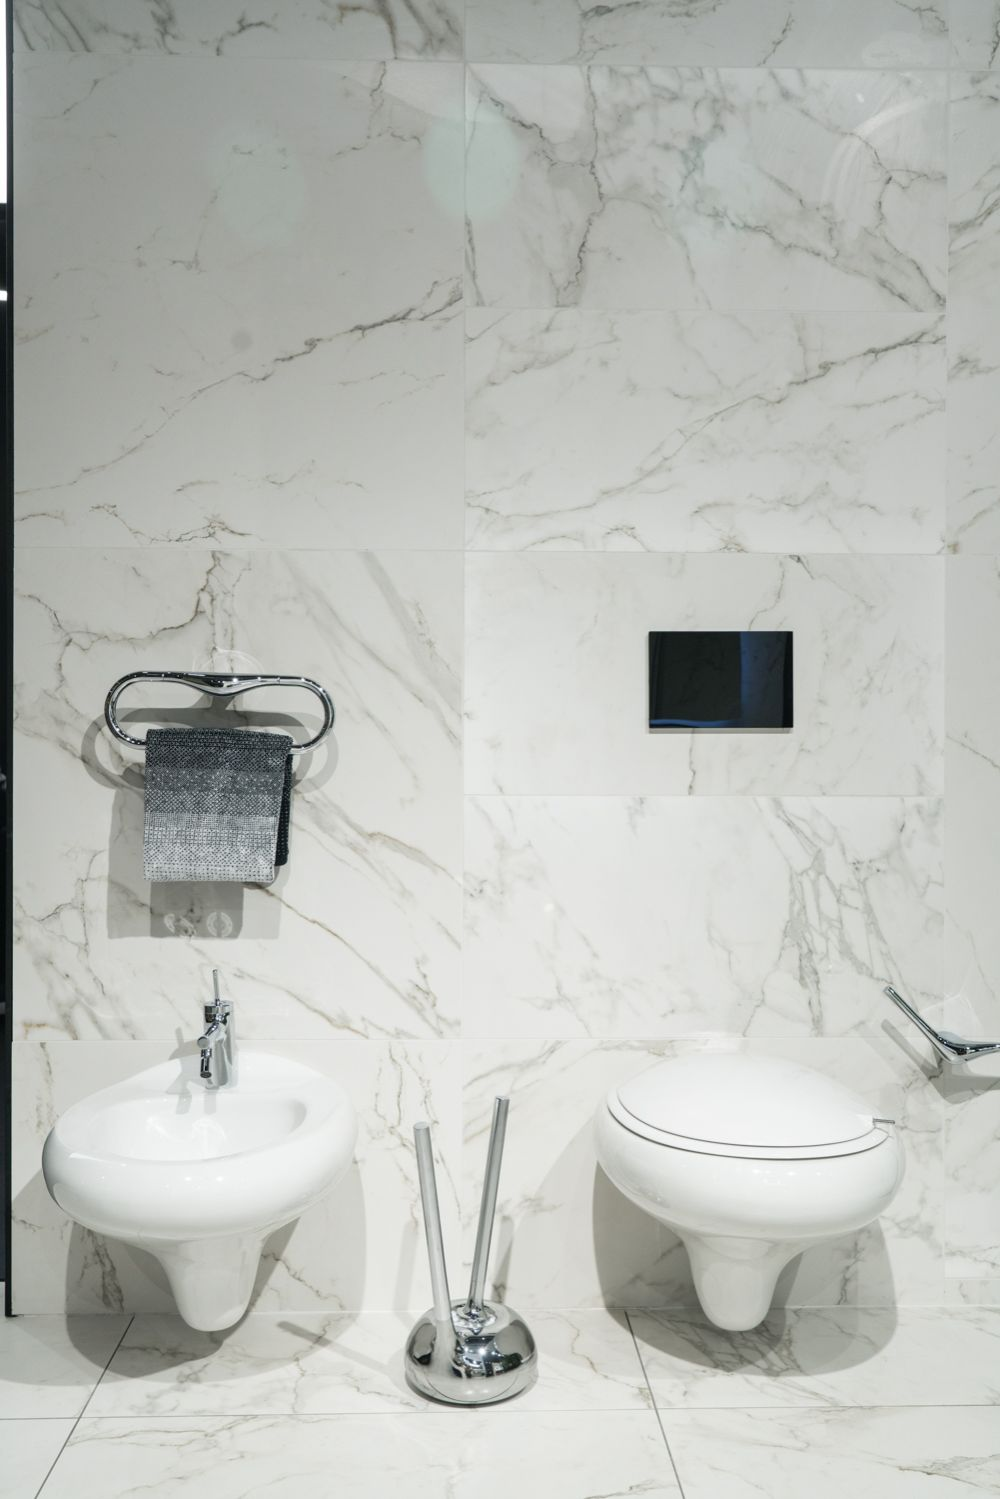 1572535004 249 the best smart toilets for a truly modern home - The Best Smart Toilets For a Truly Modern Home